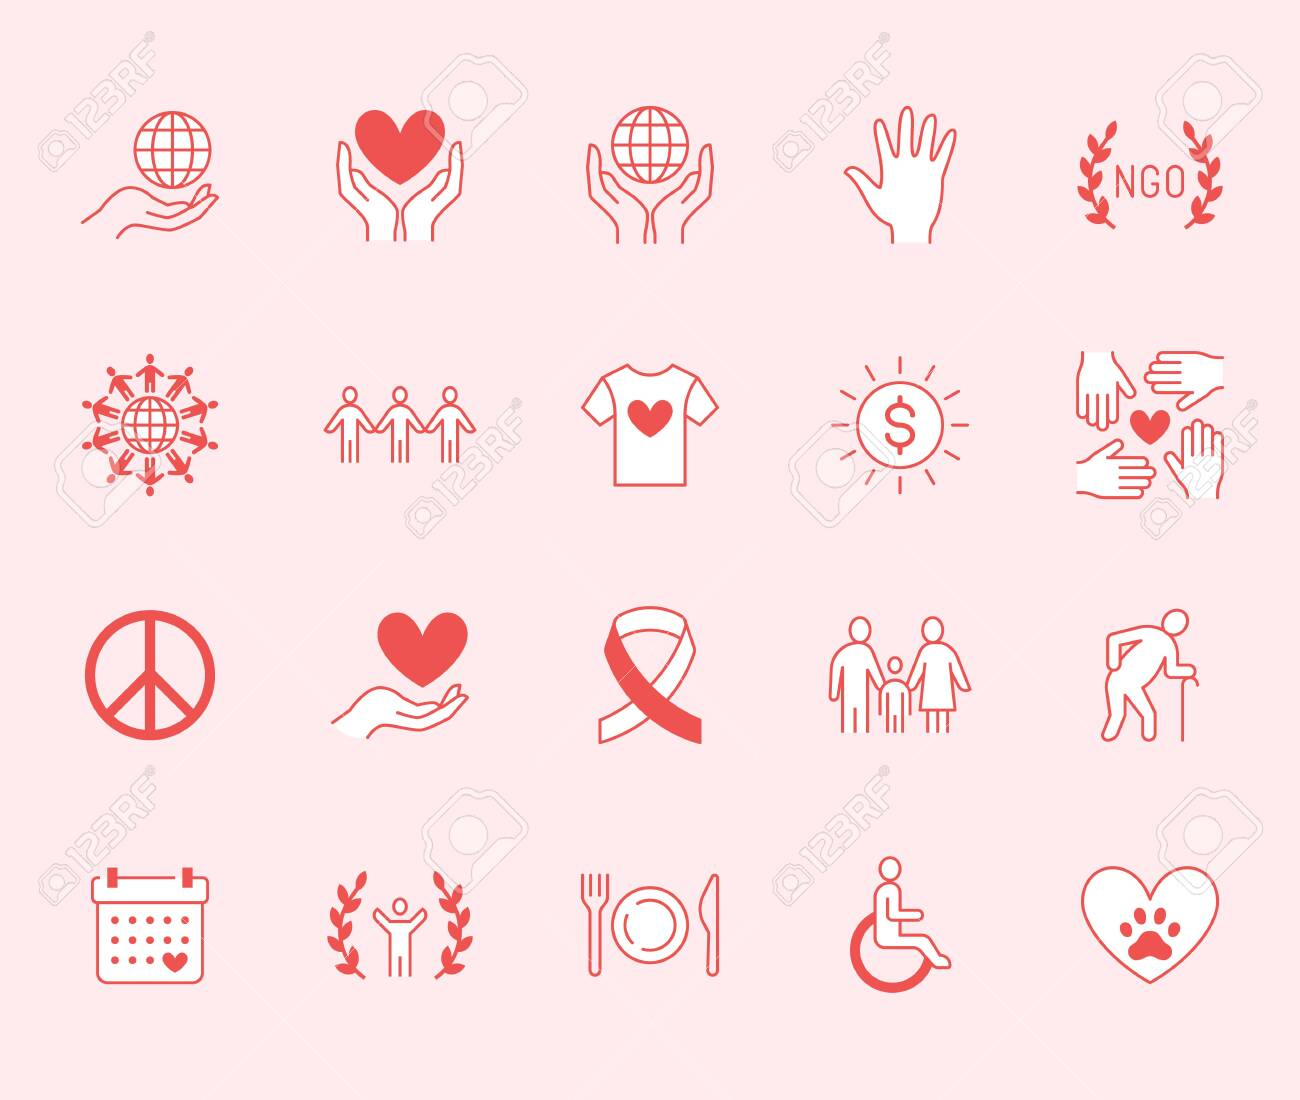 Charity Flat Line Icons Set Donation Nonprofit Organization Royalty Free Cliparts Vectors And Stock Illustration Image 126747738